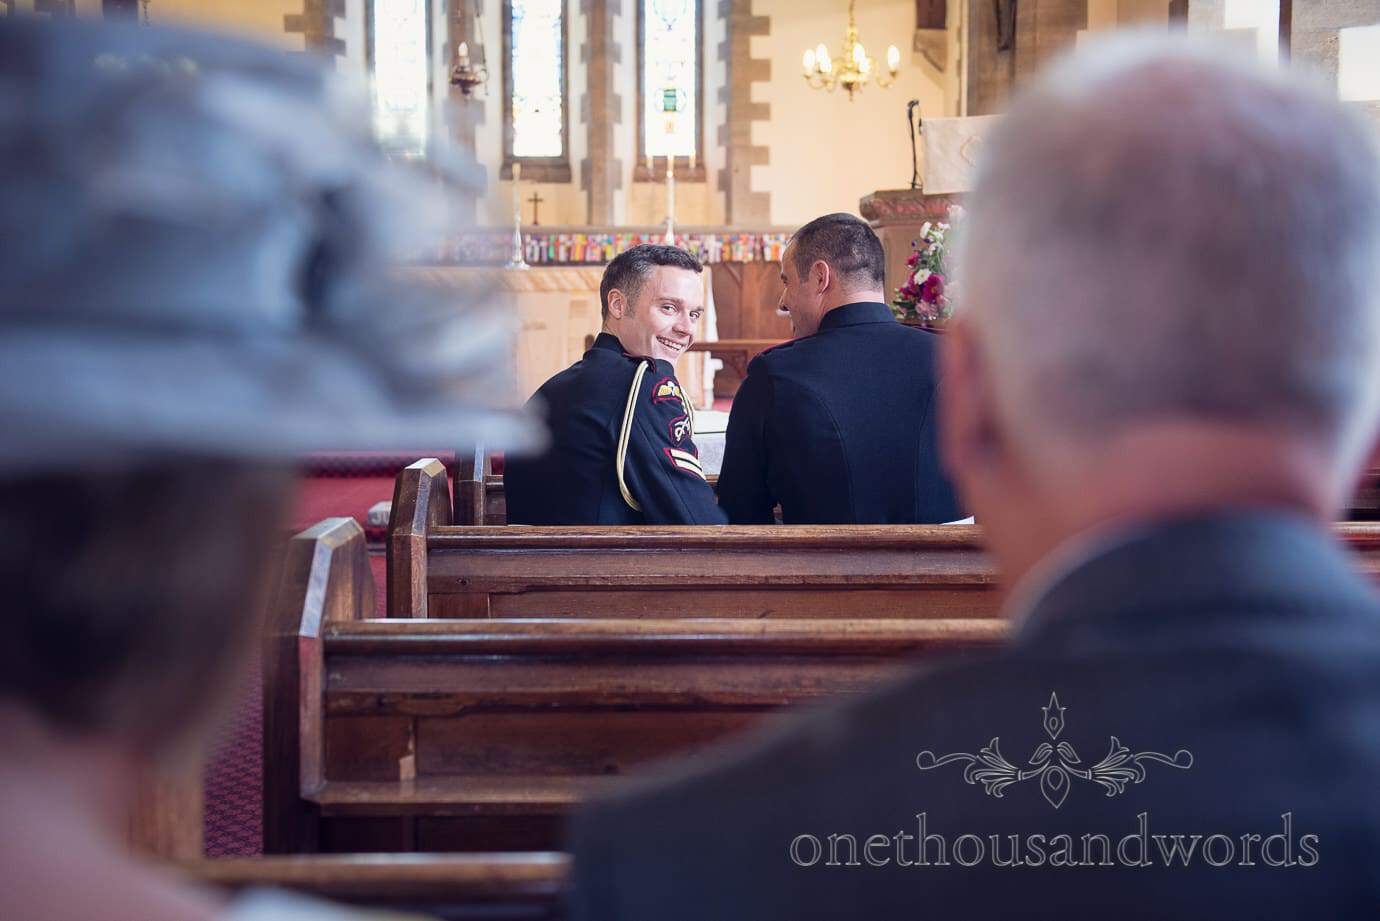 Groom in church looks over shoulder to check on wedding guests